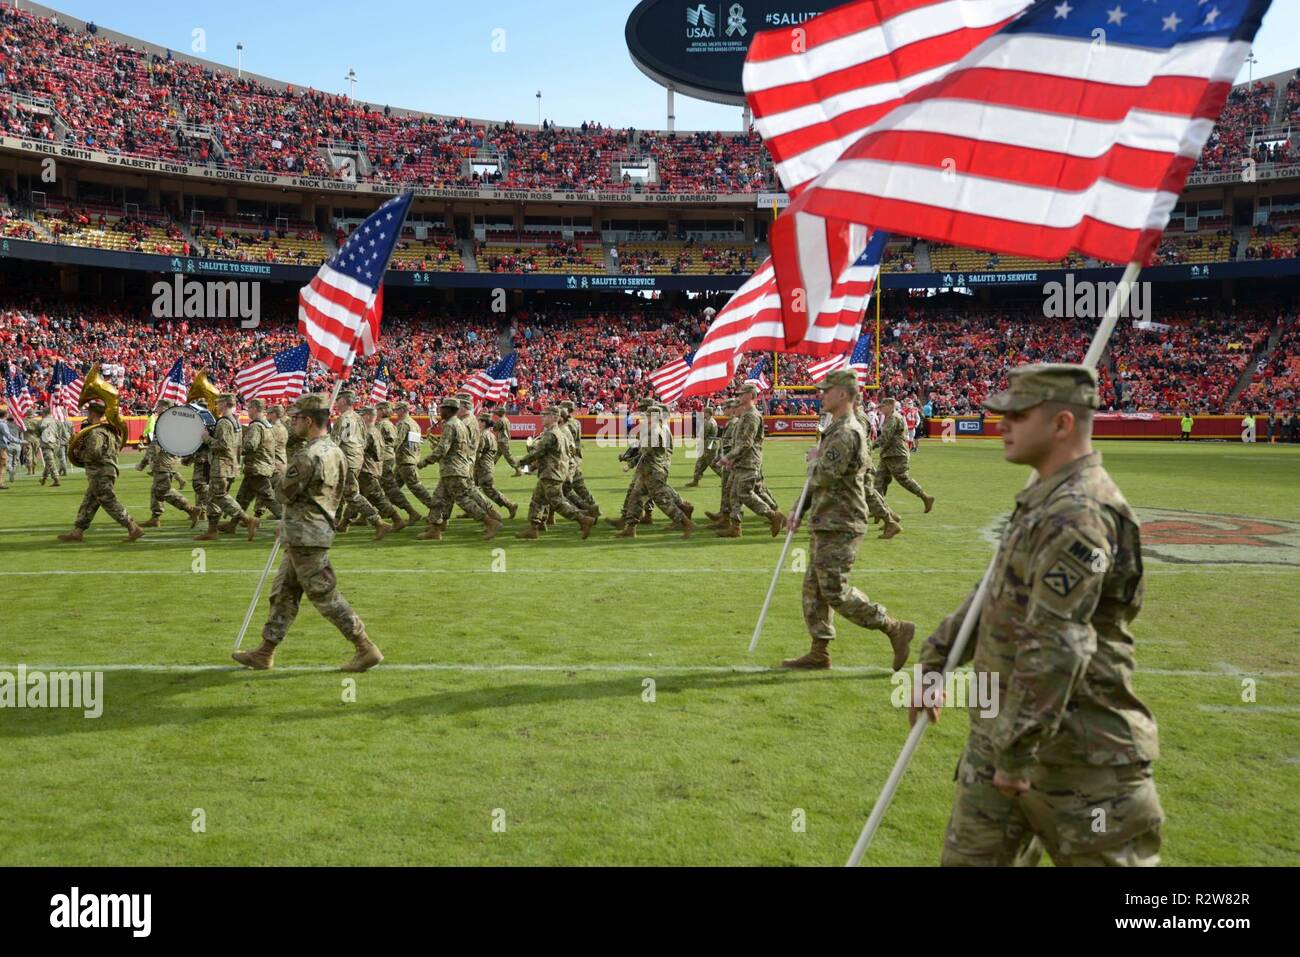 Servicemembers from the Kansas Army National Guard 35th Infantry Division Band walk off field after their halftime performance on Nov. 11, 2018 during the Chiefs football game at Kansas City, Missouri. The band in comprised of 40 band members based out of Olathe, KS. - Stock Image